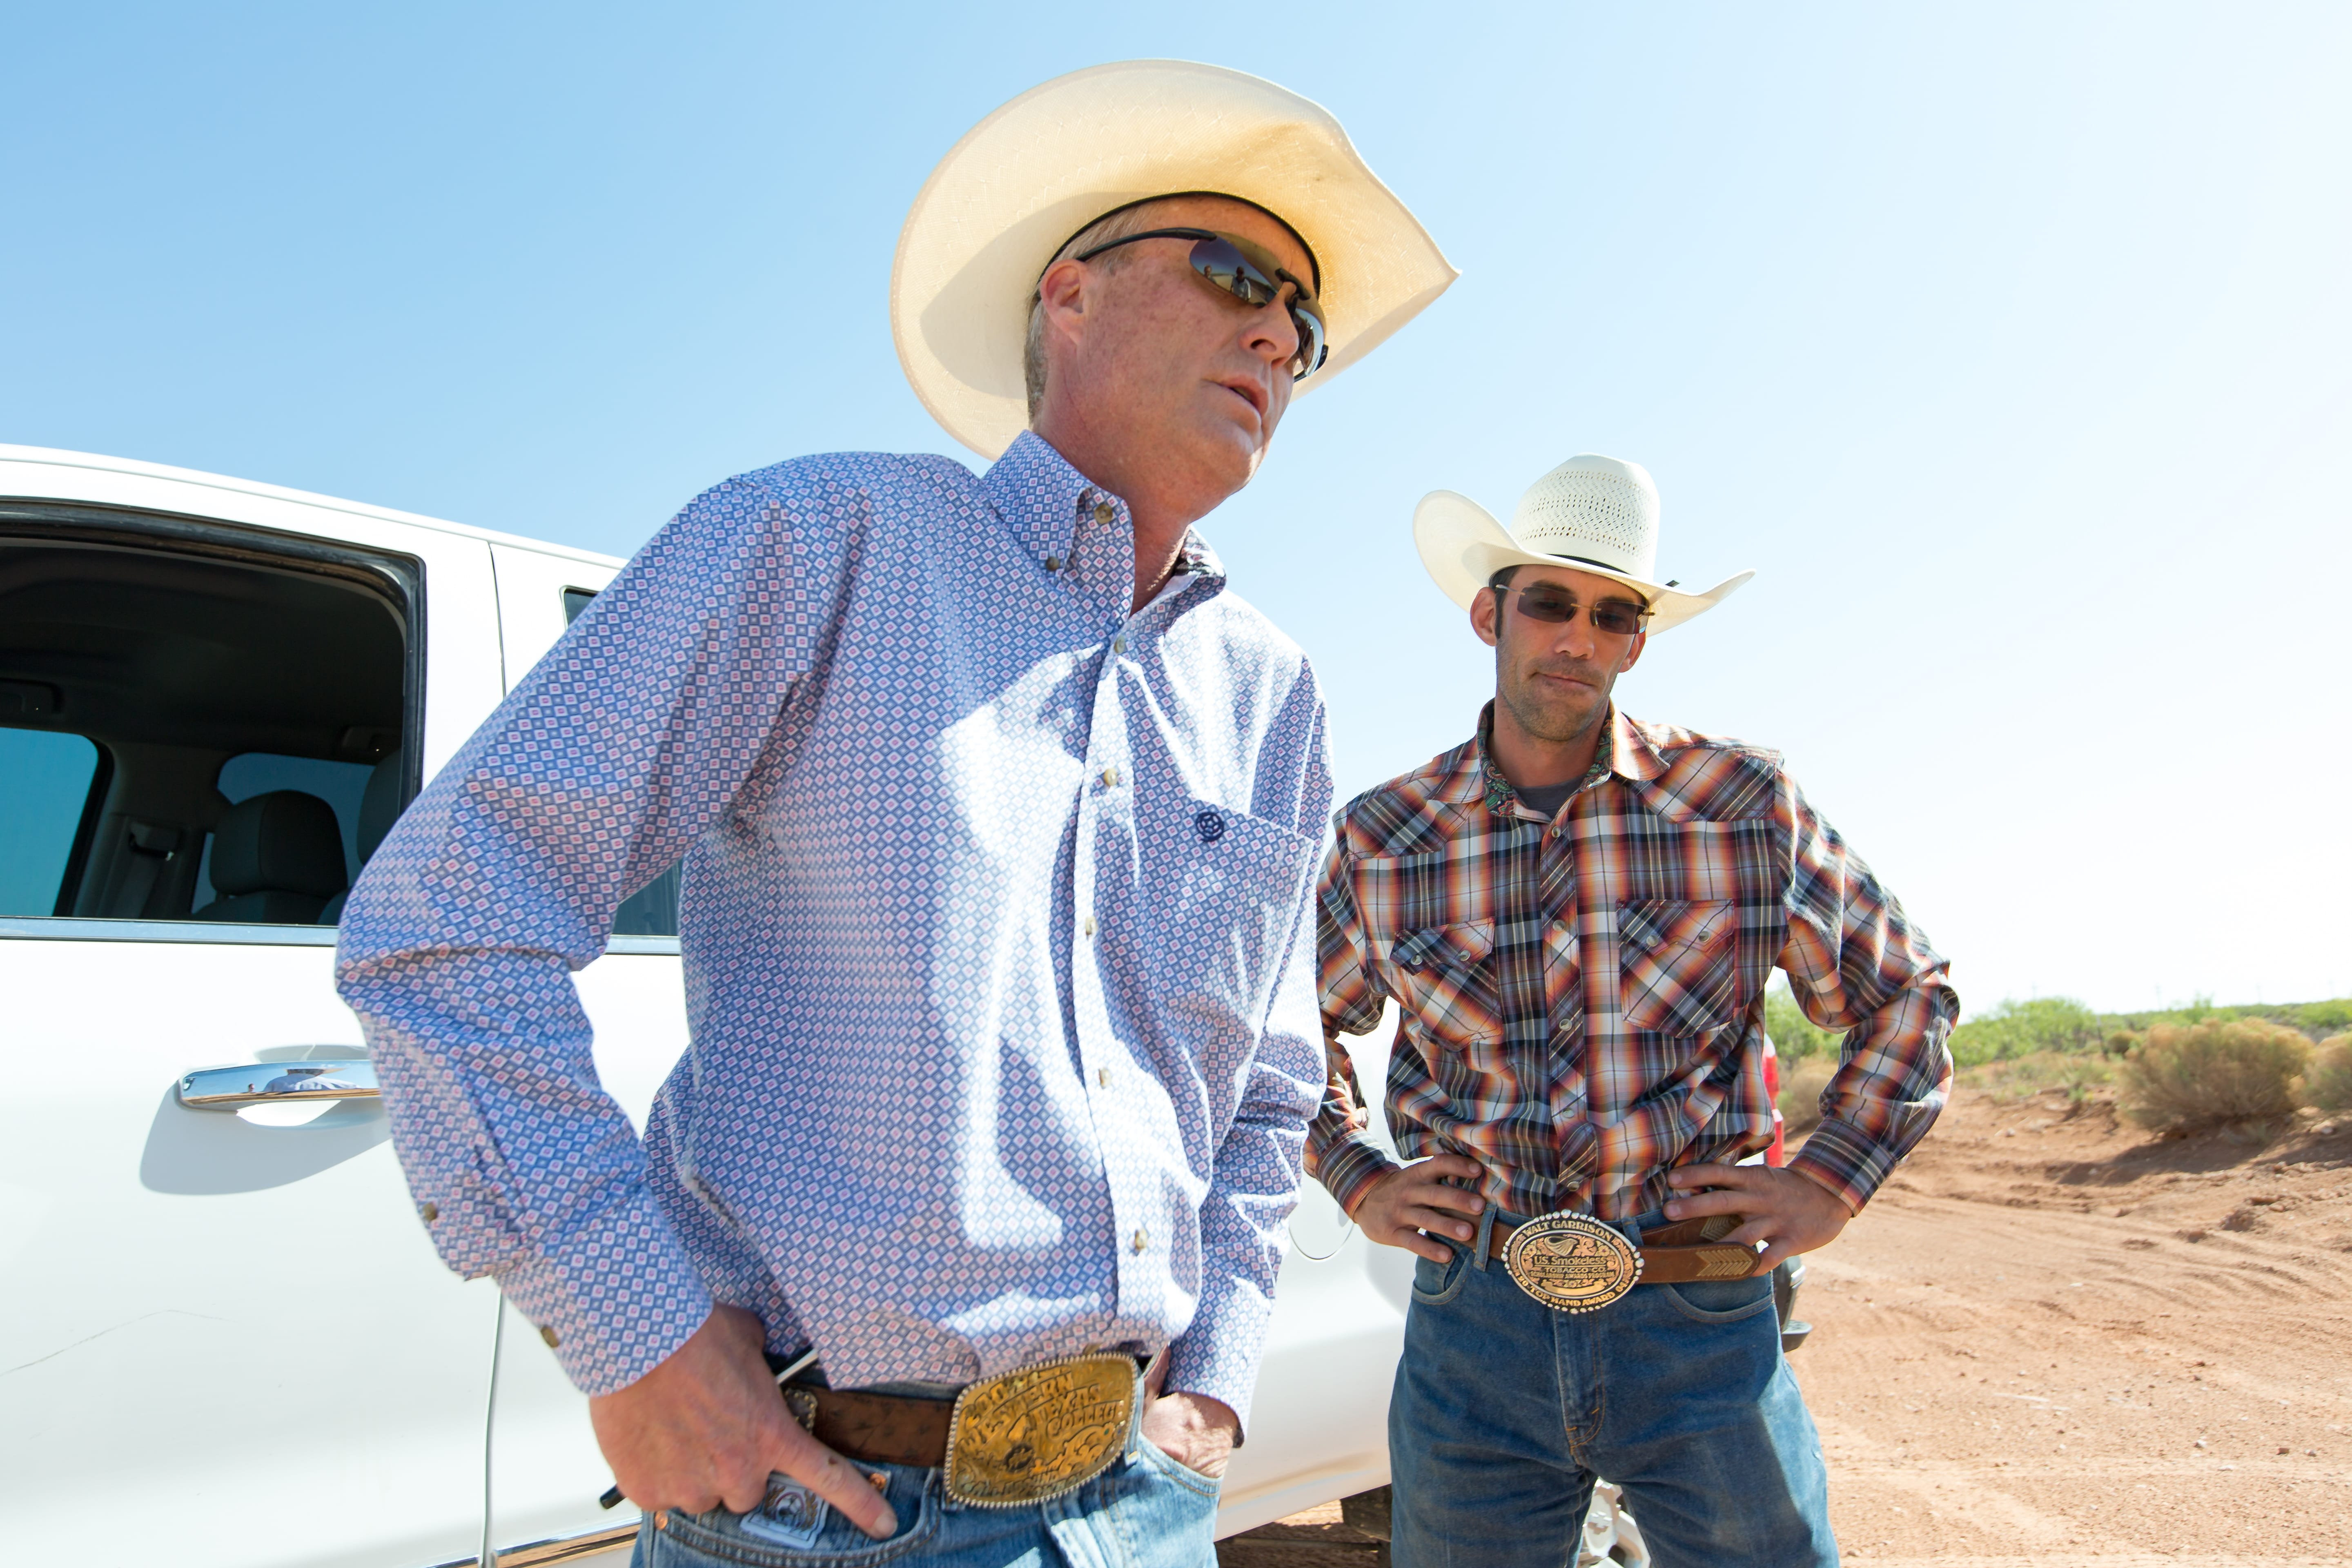 Wayne Smith (foreground) and business partner J.W. Todd have objected to the way the federal government manages oil production on public land that ranchers also lease in southeastern New Mexico. (Robin Zielinski for the Center for Public Integrity)